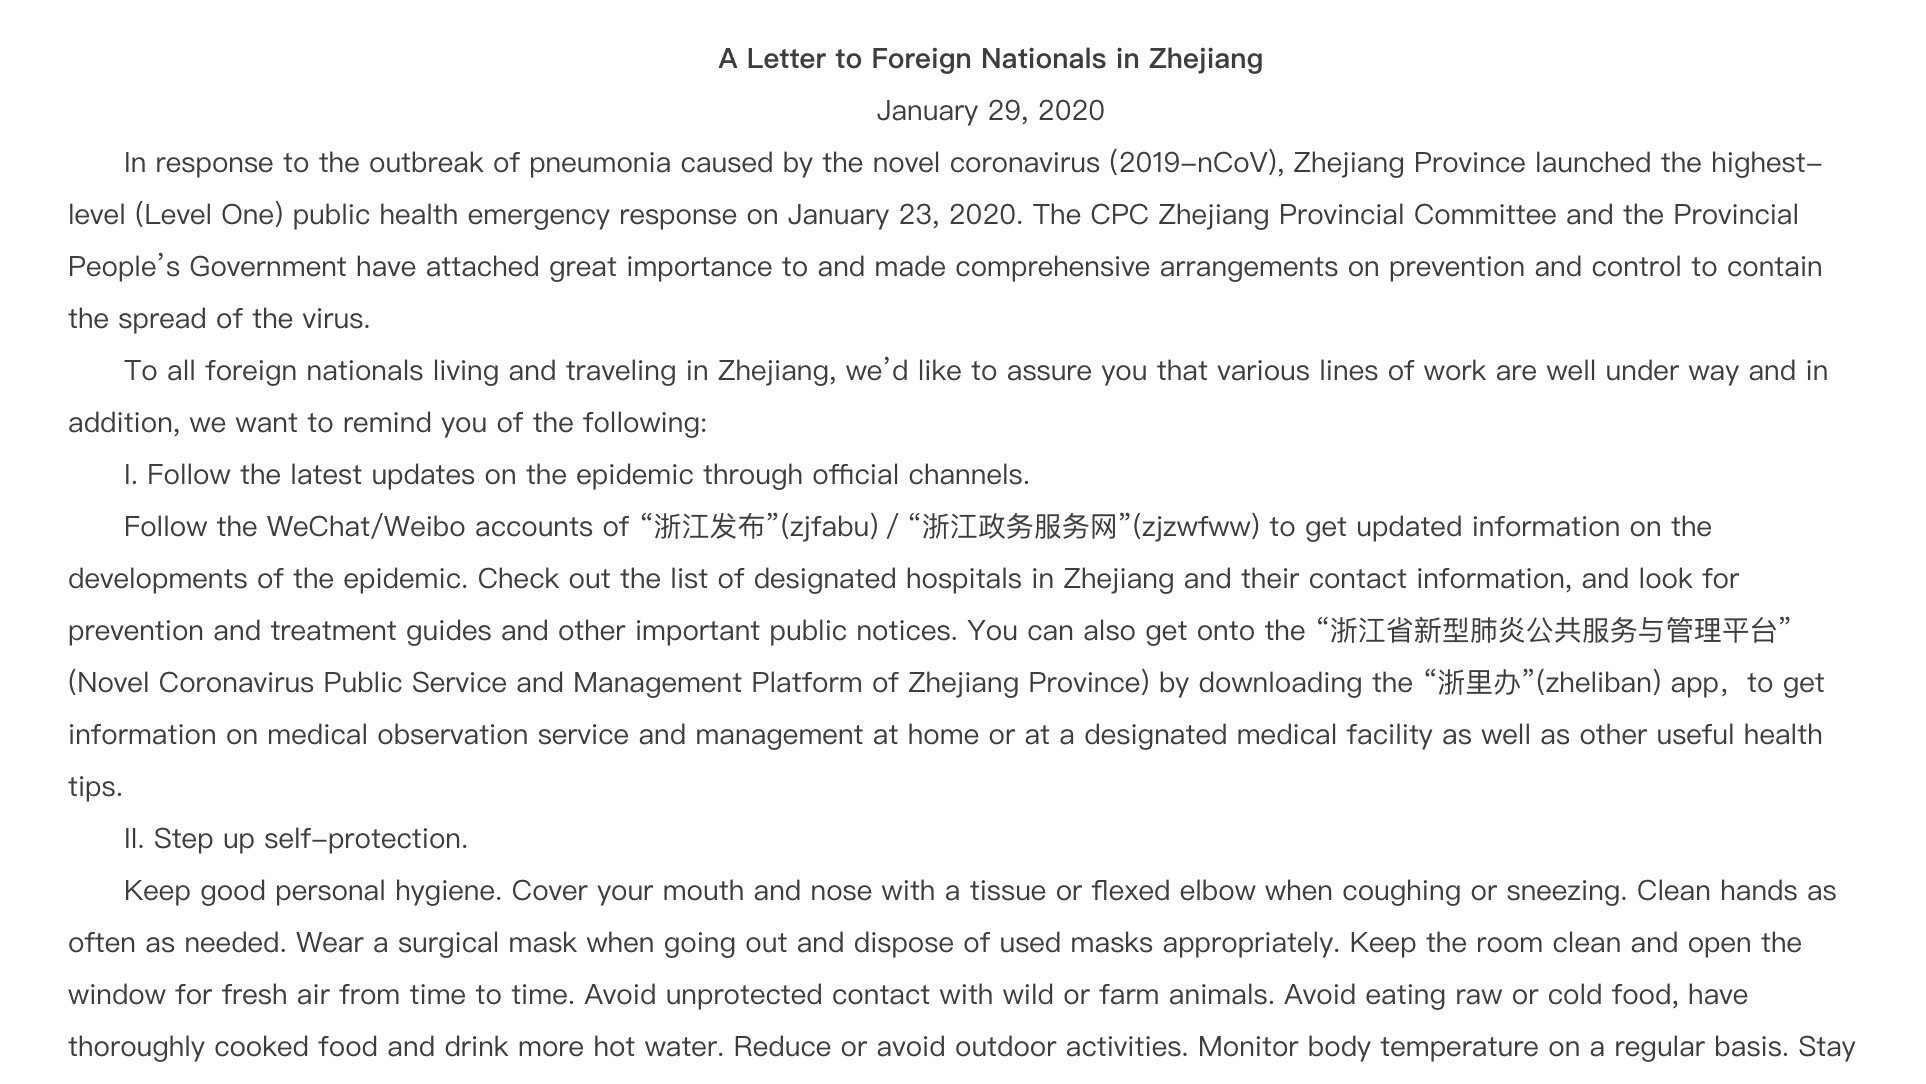 A Letter to Foreign Nationals in Zhejiang